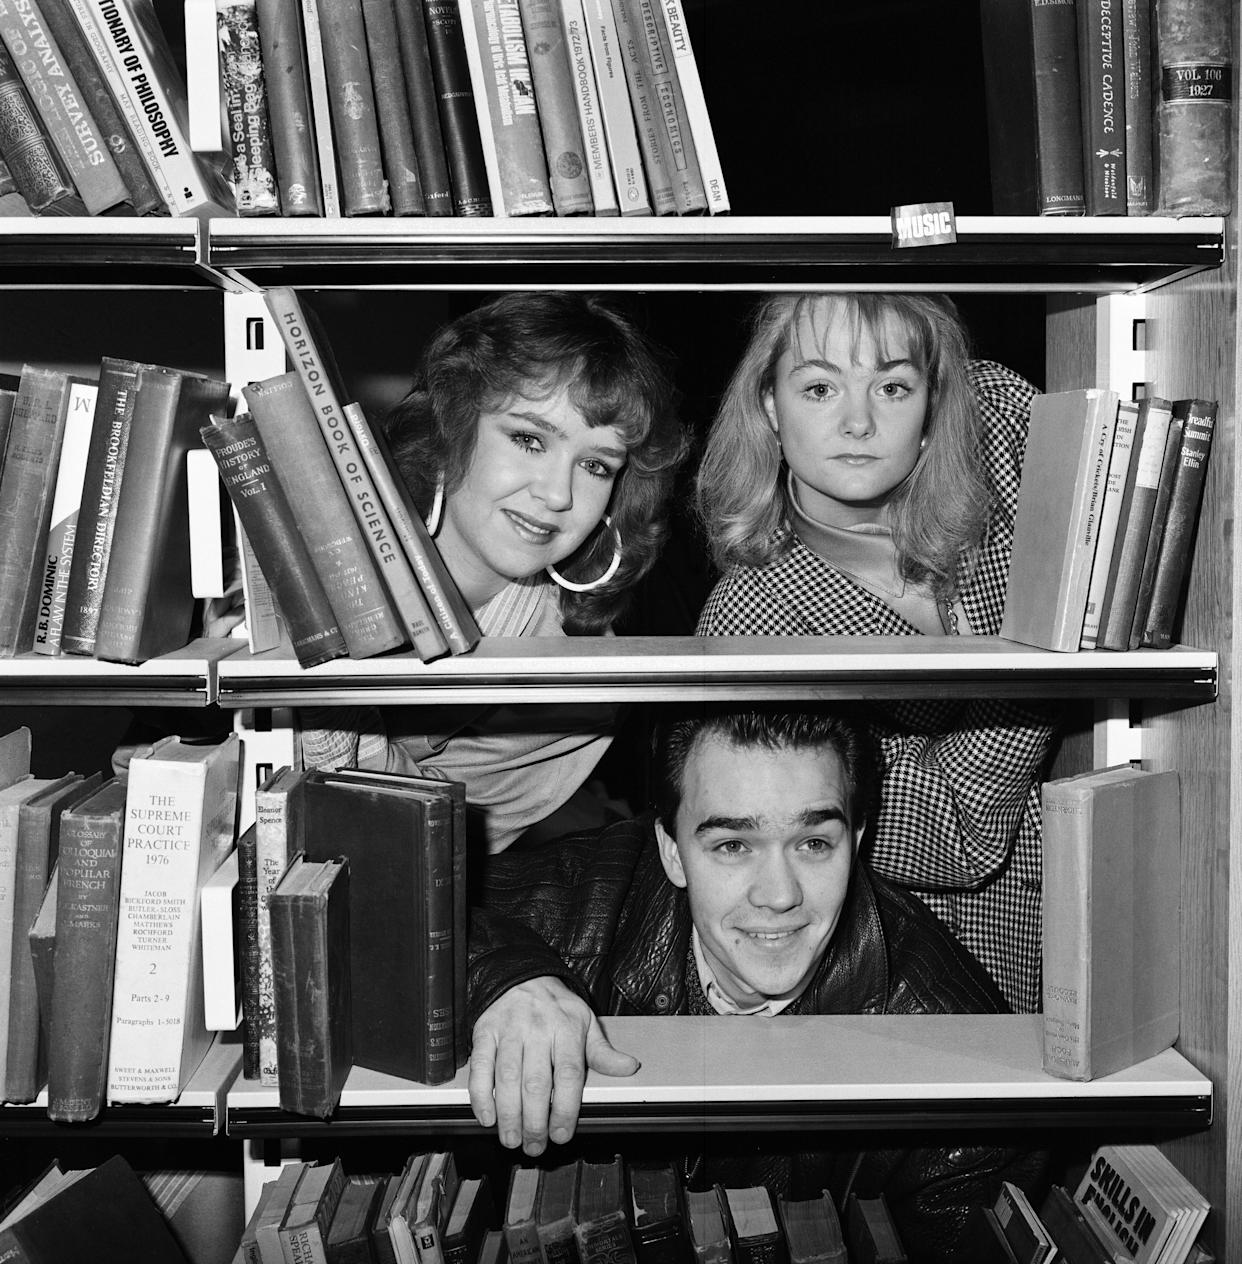 Todd Carty and Alison Valentine will be joined by Lee MacDonald for a special Grange Hill live show (Photo by Mike Maloney/Daily Mirror/Mirrorpix/Getty Images)